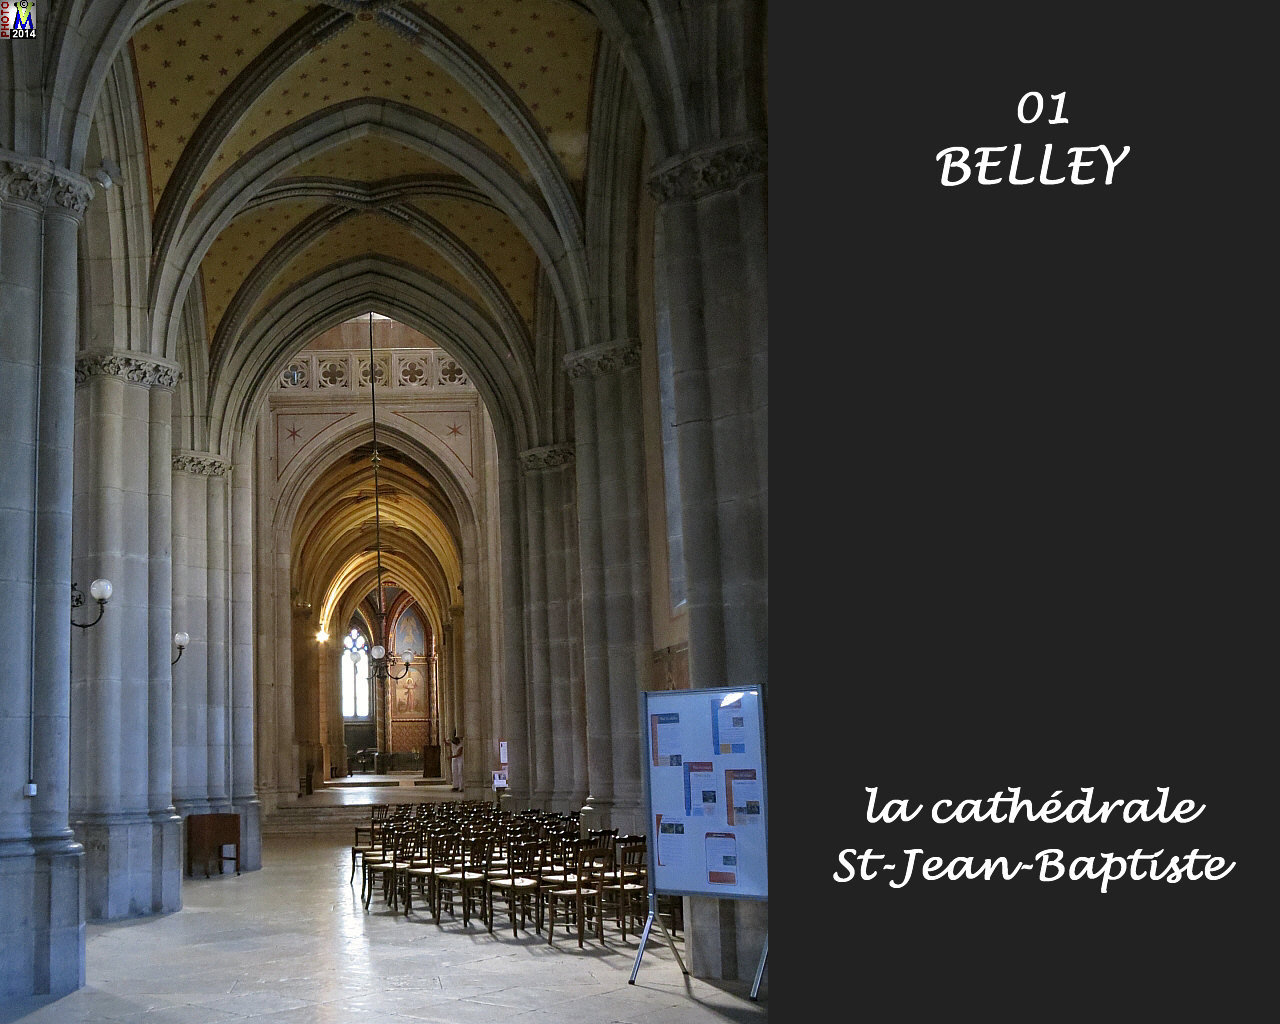 01BELLEY_cathedrale_224.jpg